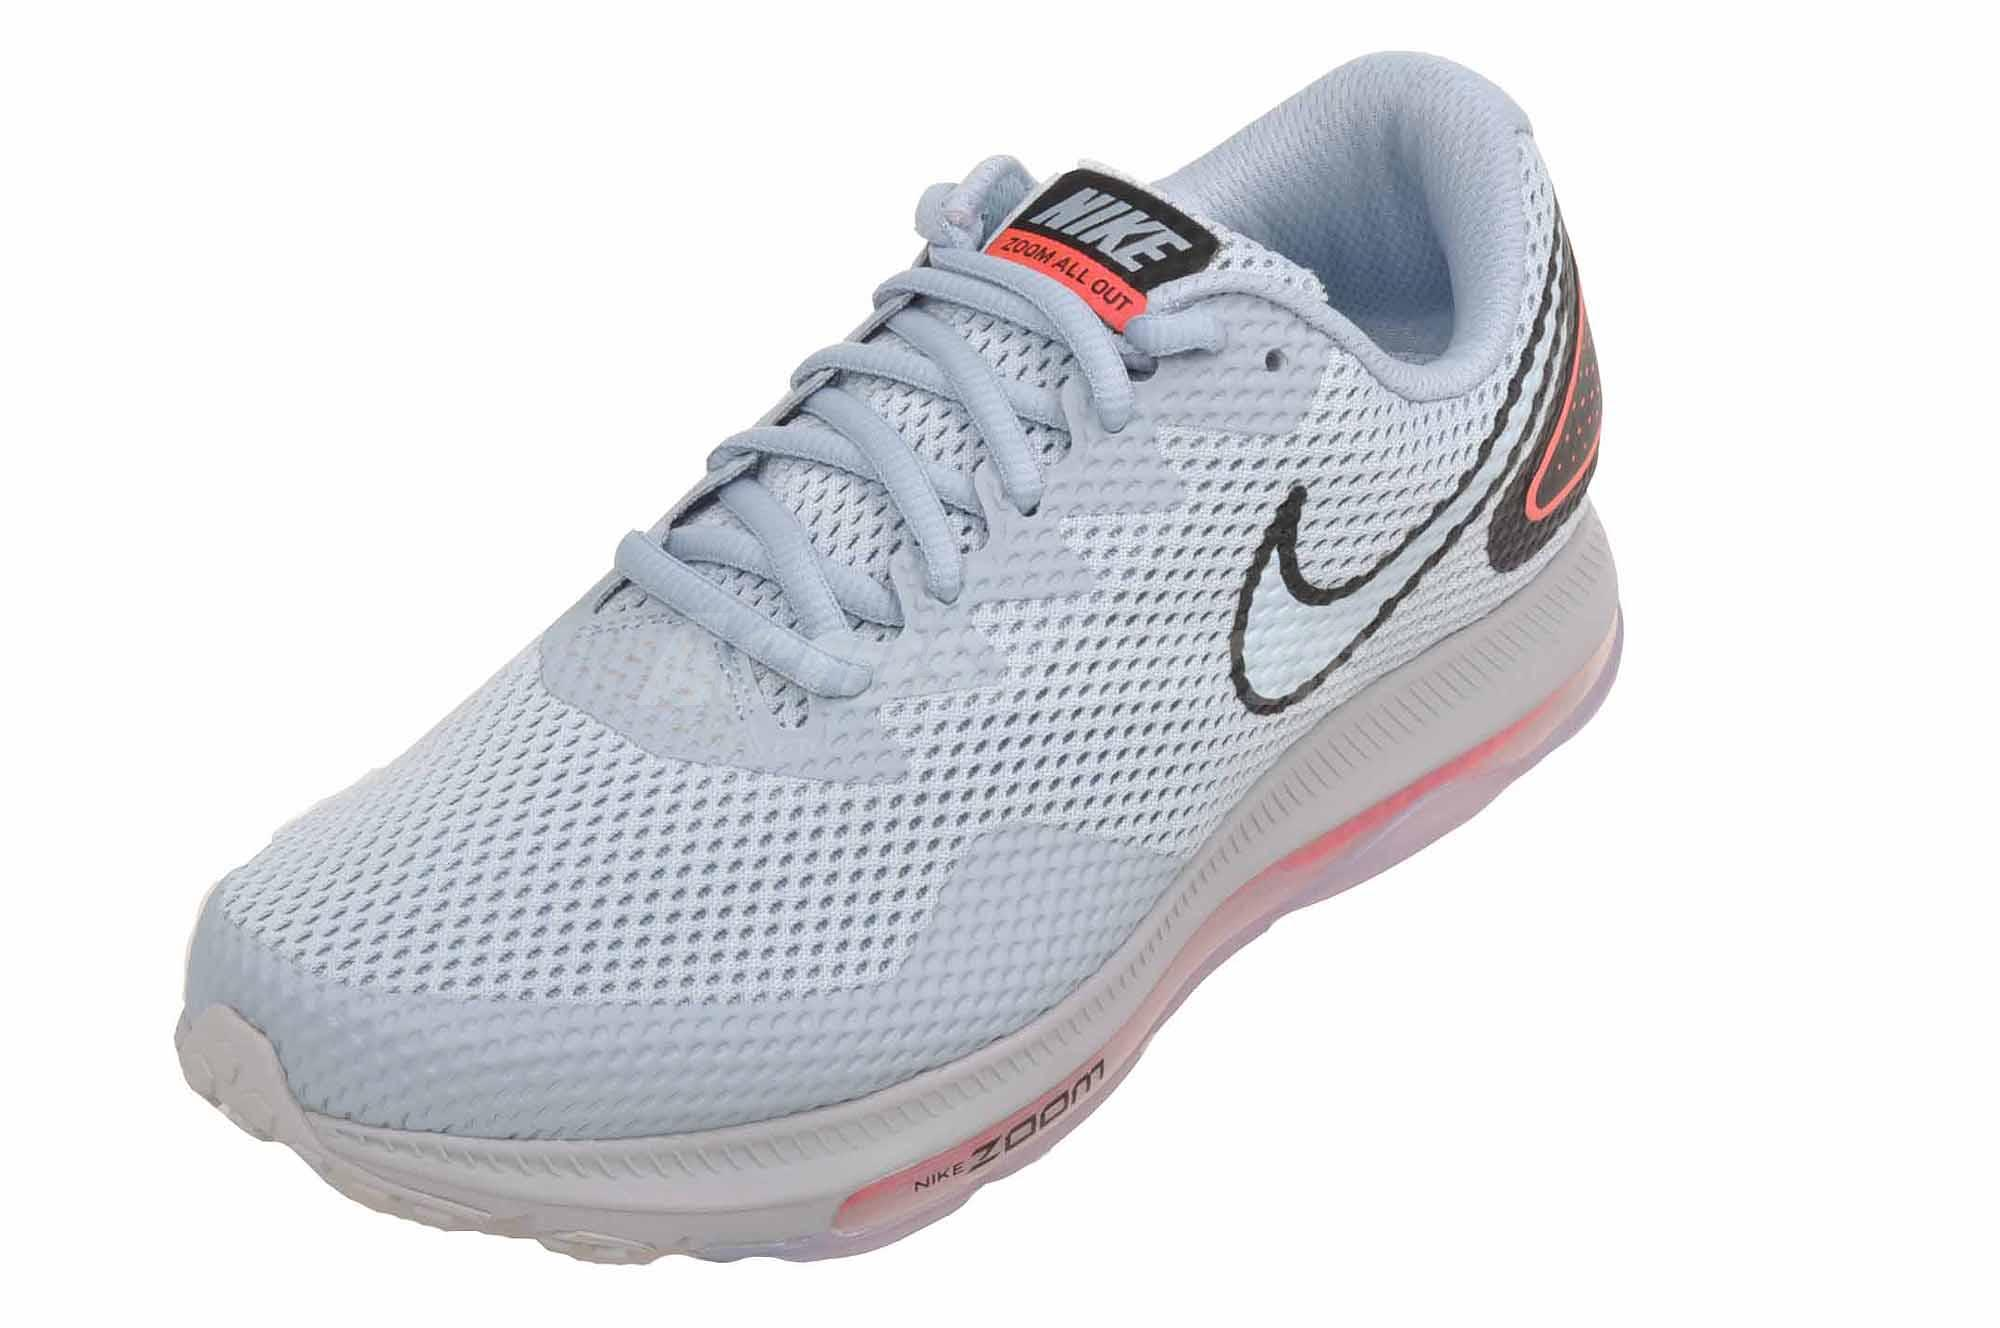 size 40 a08ea ade86 Nike Wmns Zoom All Out Low 2 Running Womens Shoes Ocean Blis